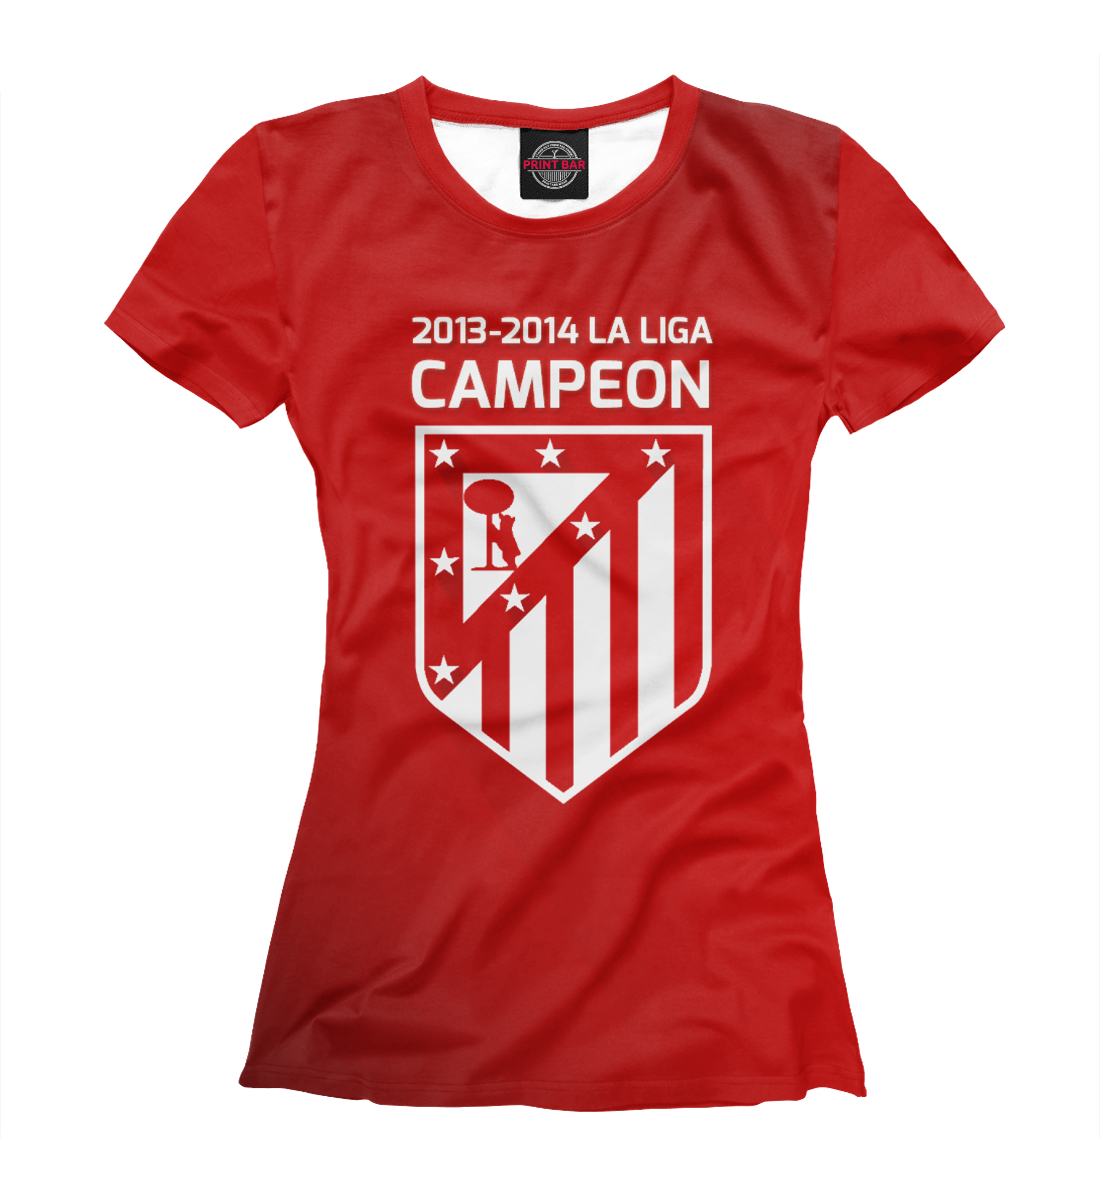 Купить Campeon La Liga 2013-2014, Printbar, Футболки, APD-448643-fut-1